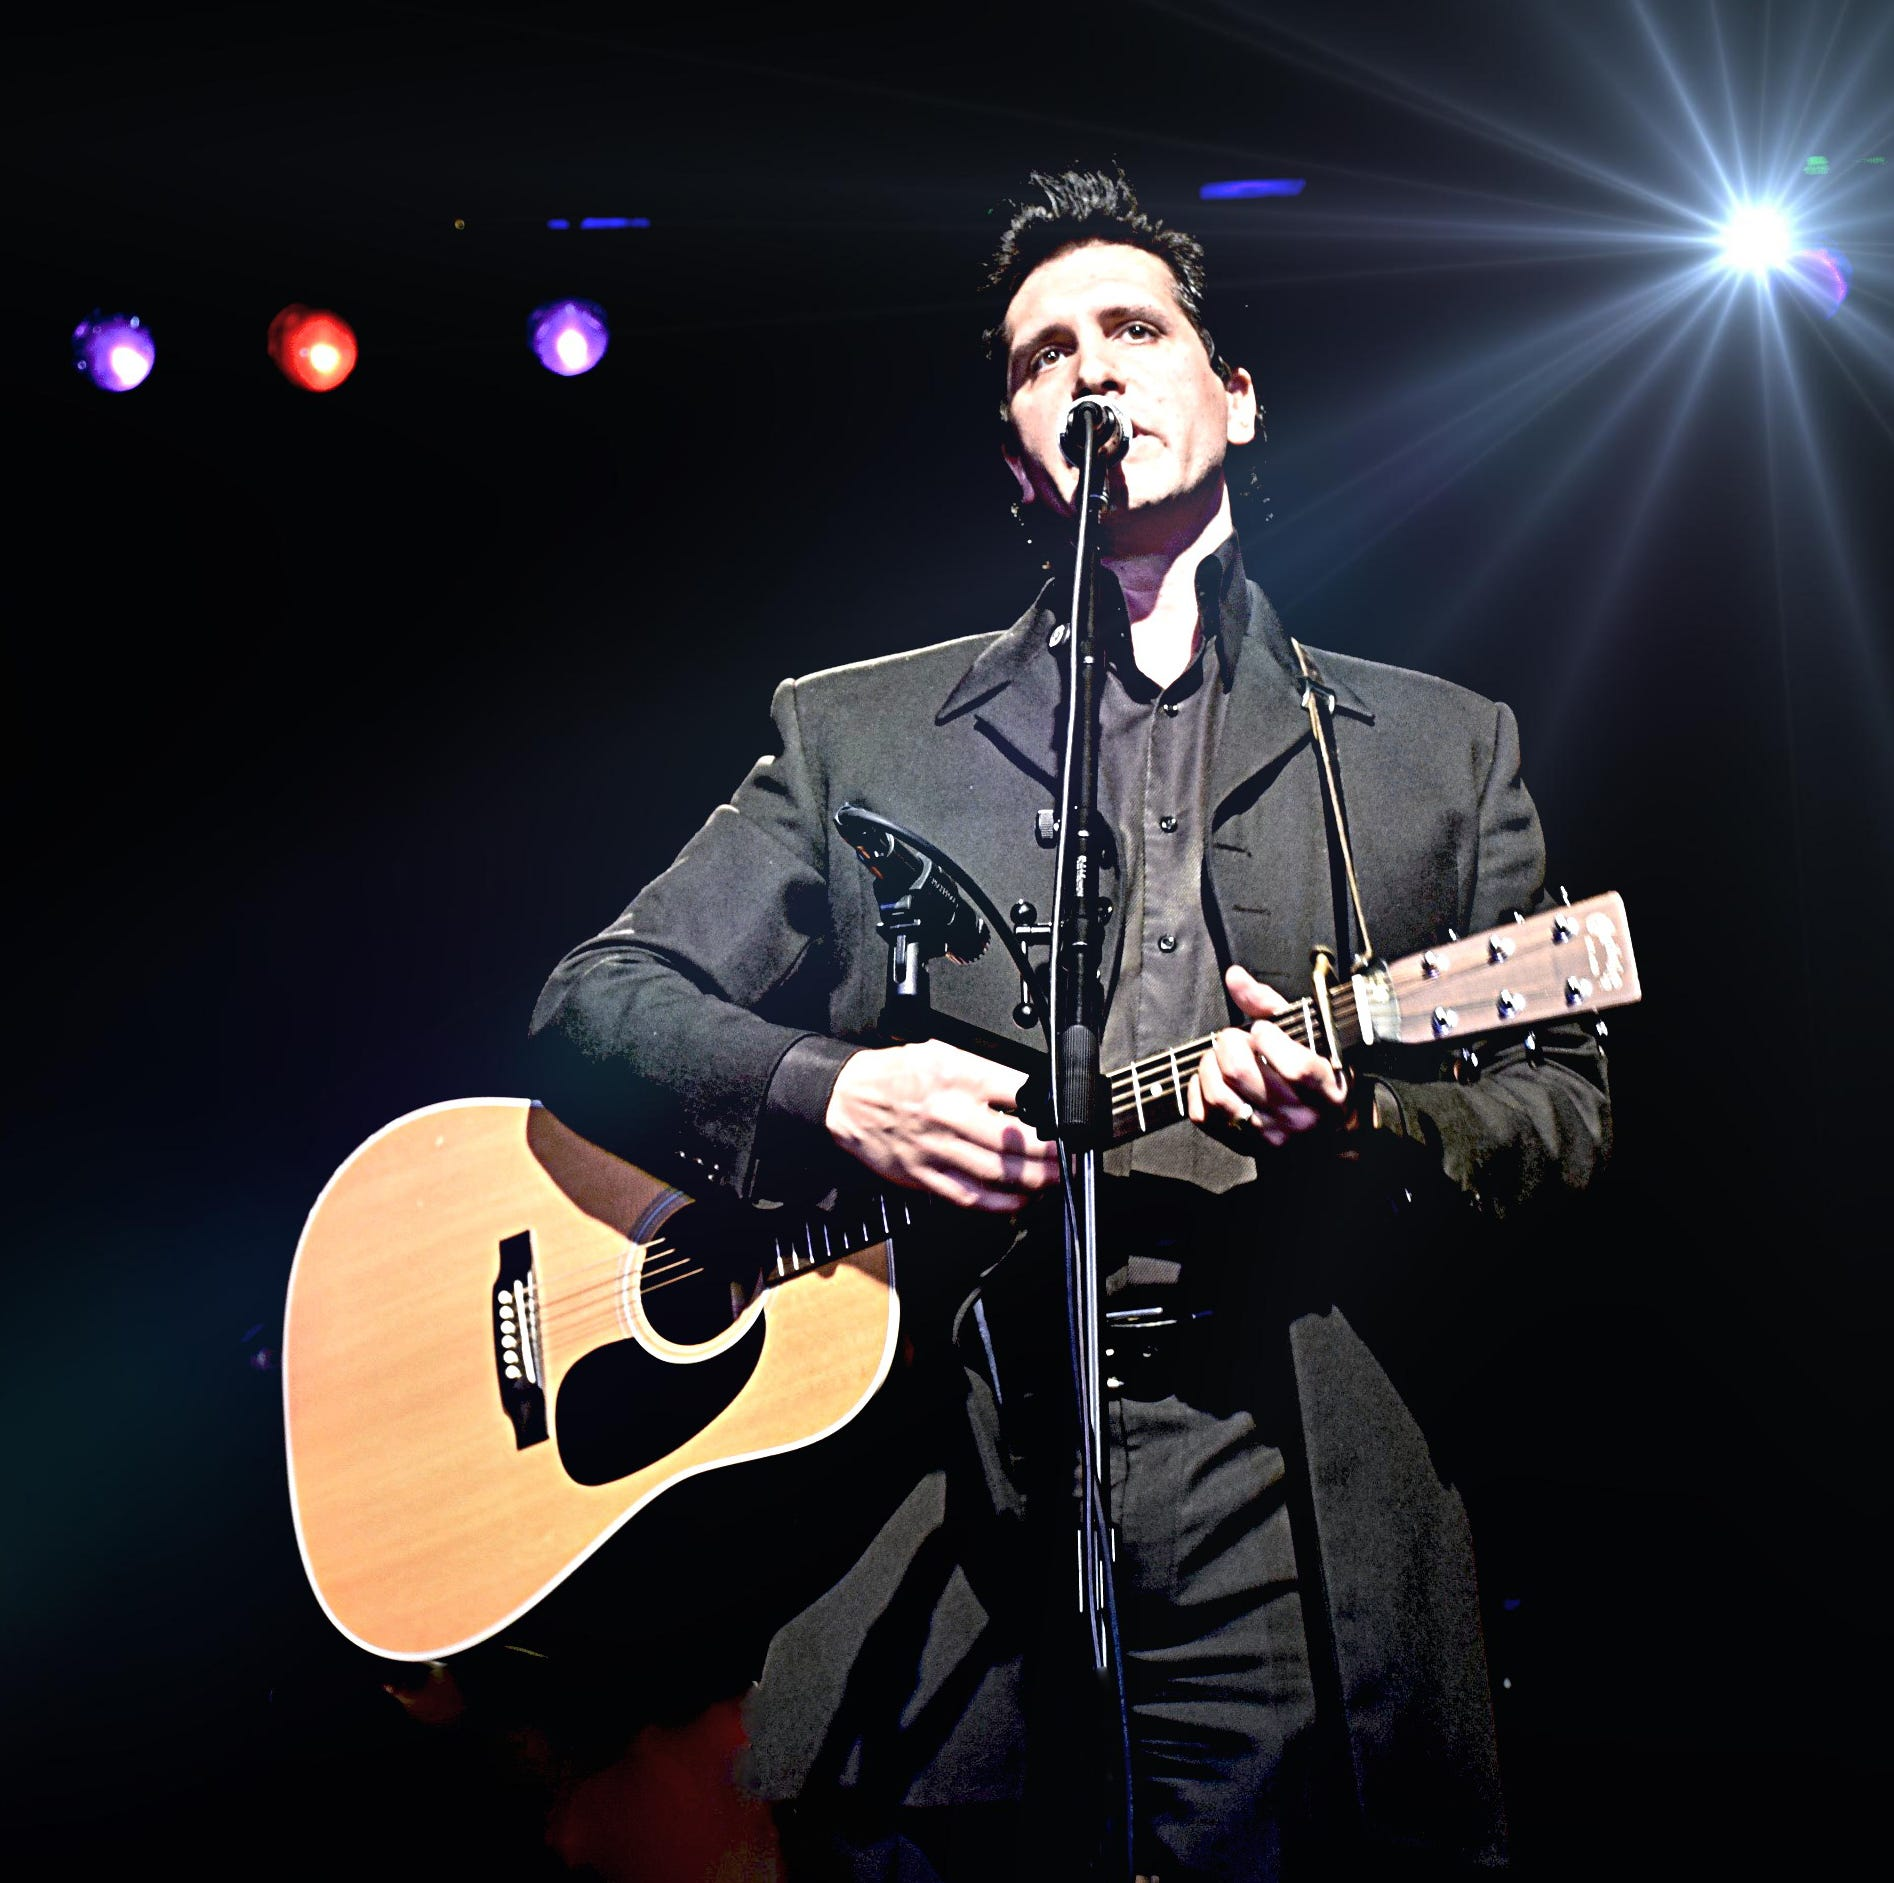 Visalia Fox hosts Man in Black tribute show. Will it 'Walk the Line'?